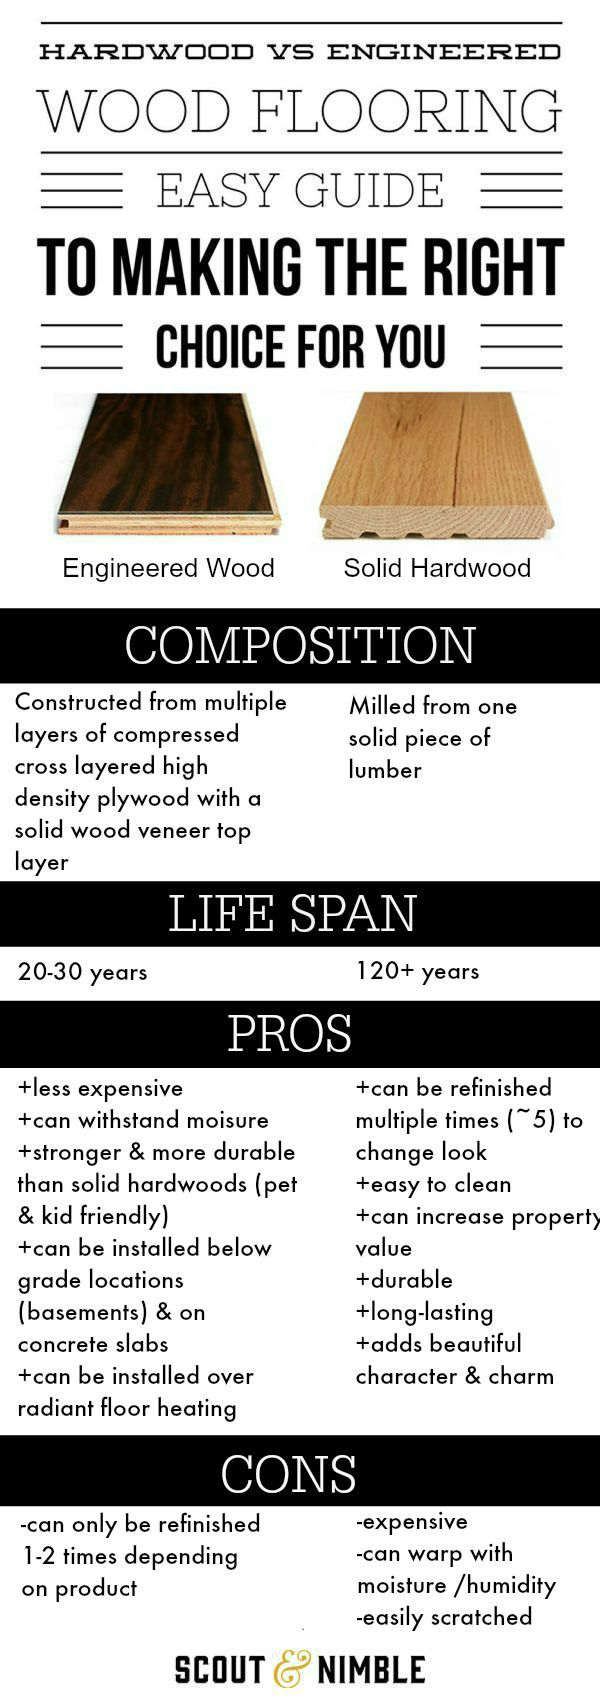 Solid vs. Engineered Wood Flooring Infographic Comparison | Easy Guide to decide which is right for you